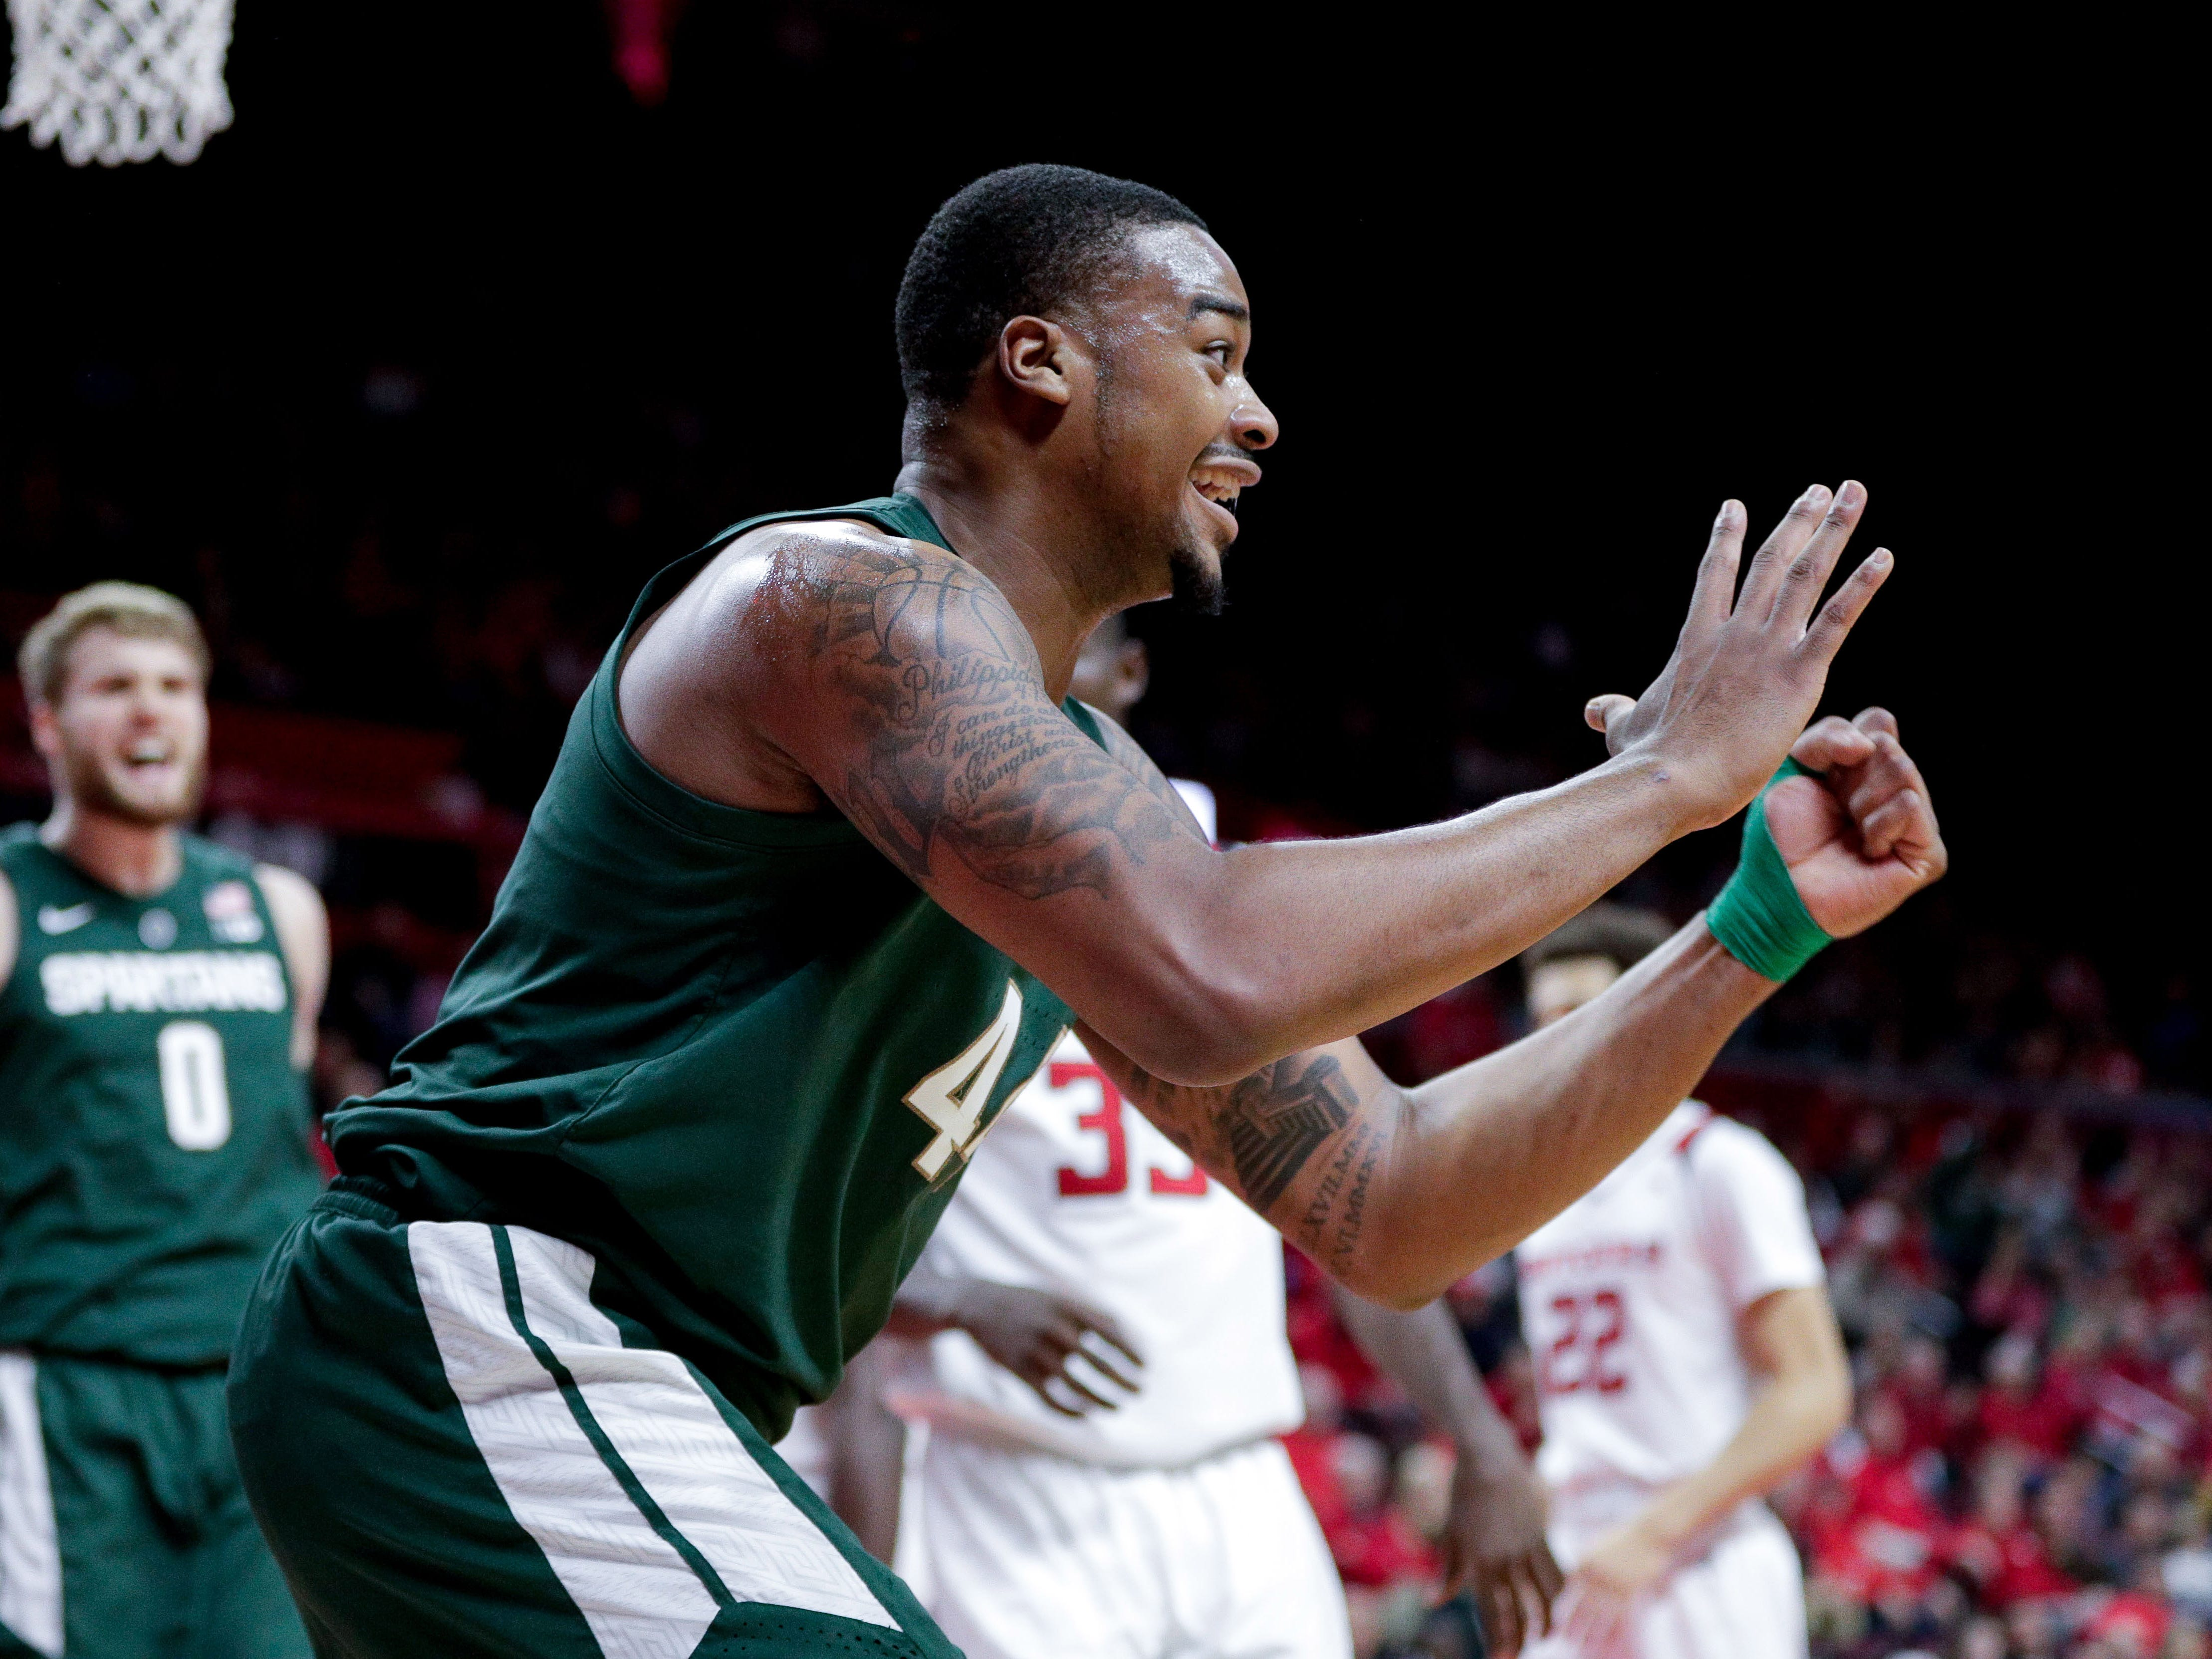 Michigan State Spartans forward Nick Ward (44) celebrates a basket during the first half against the Rutgers Scarlet Knights at Rutgers Athletic Center (RAC).